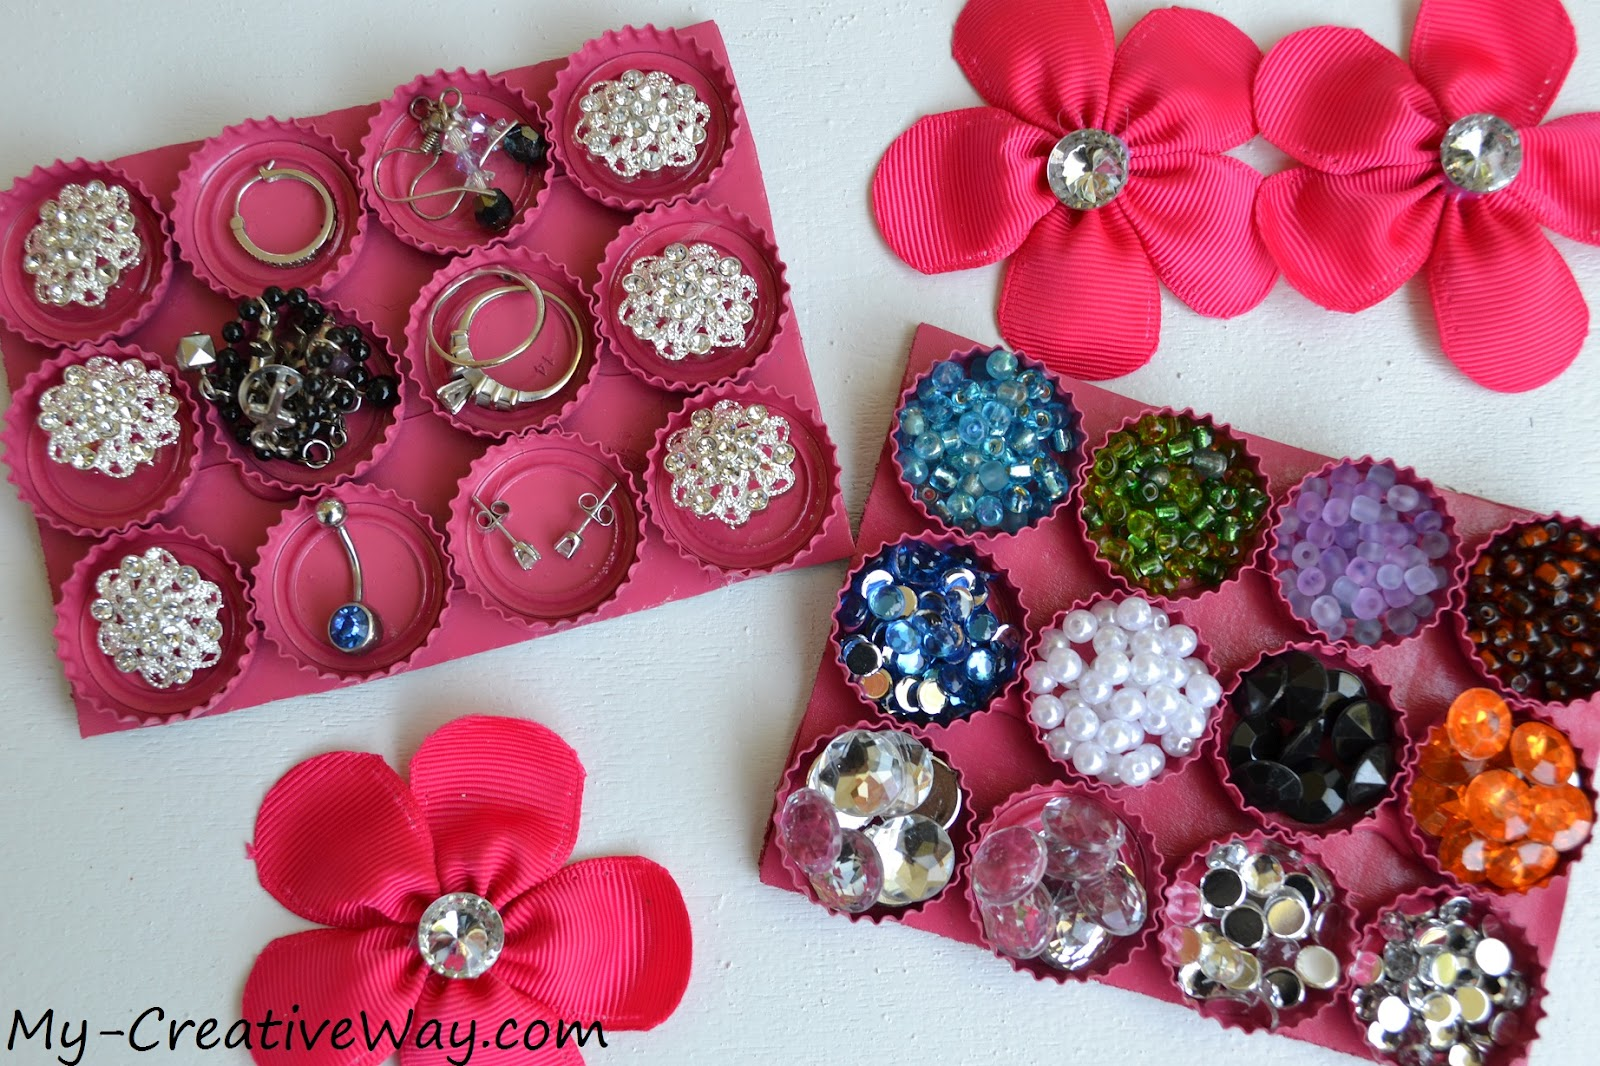 My creative way diy bottle cap organizer for Cap crafter